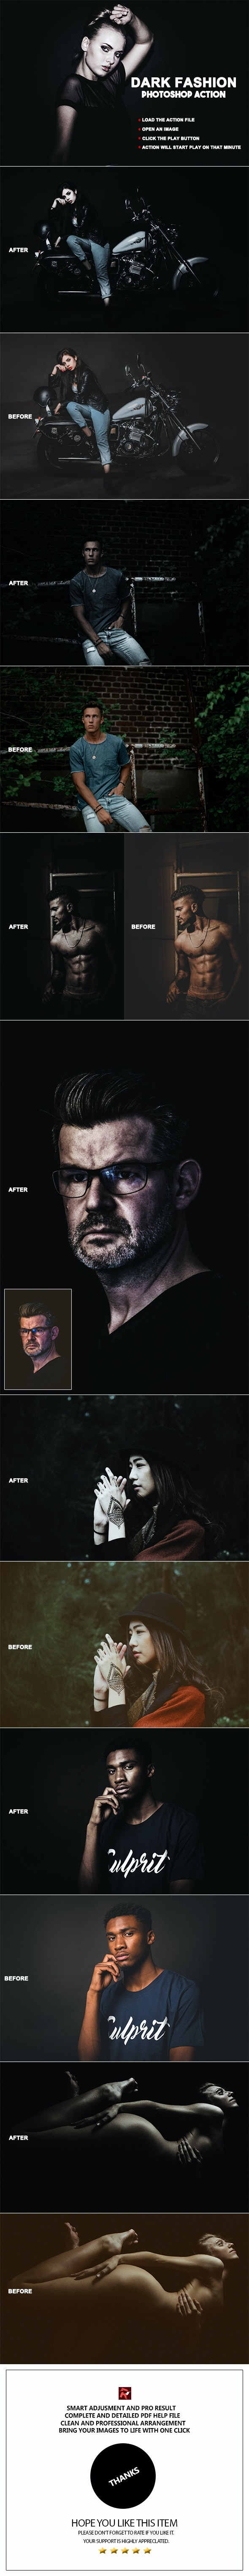 Dark Fashion Photoshop Action - Photo Effects Actions